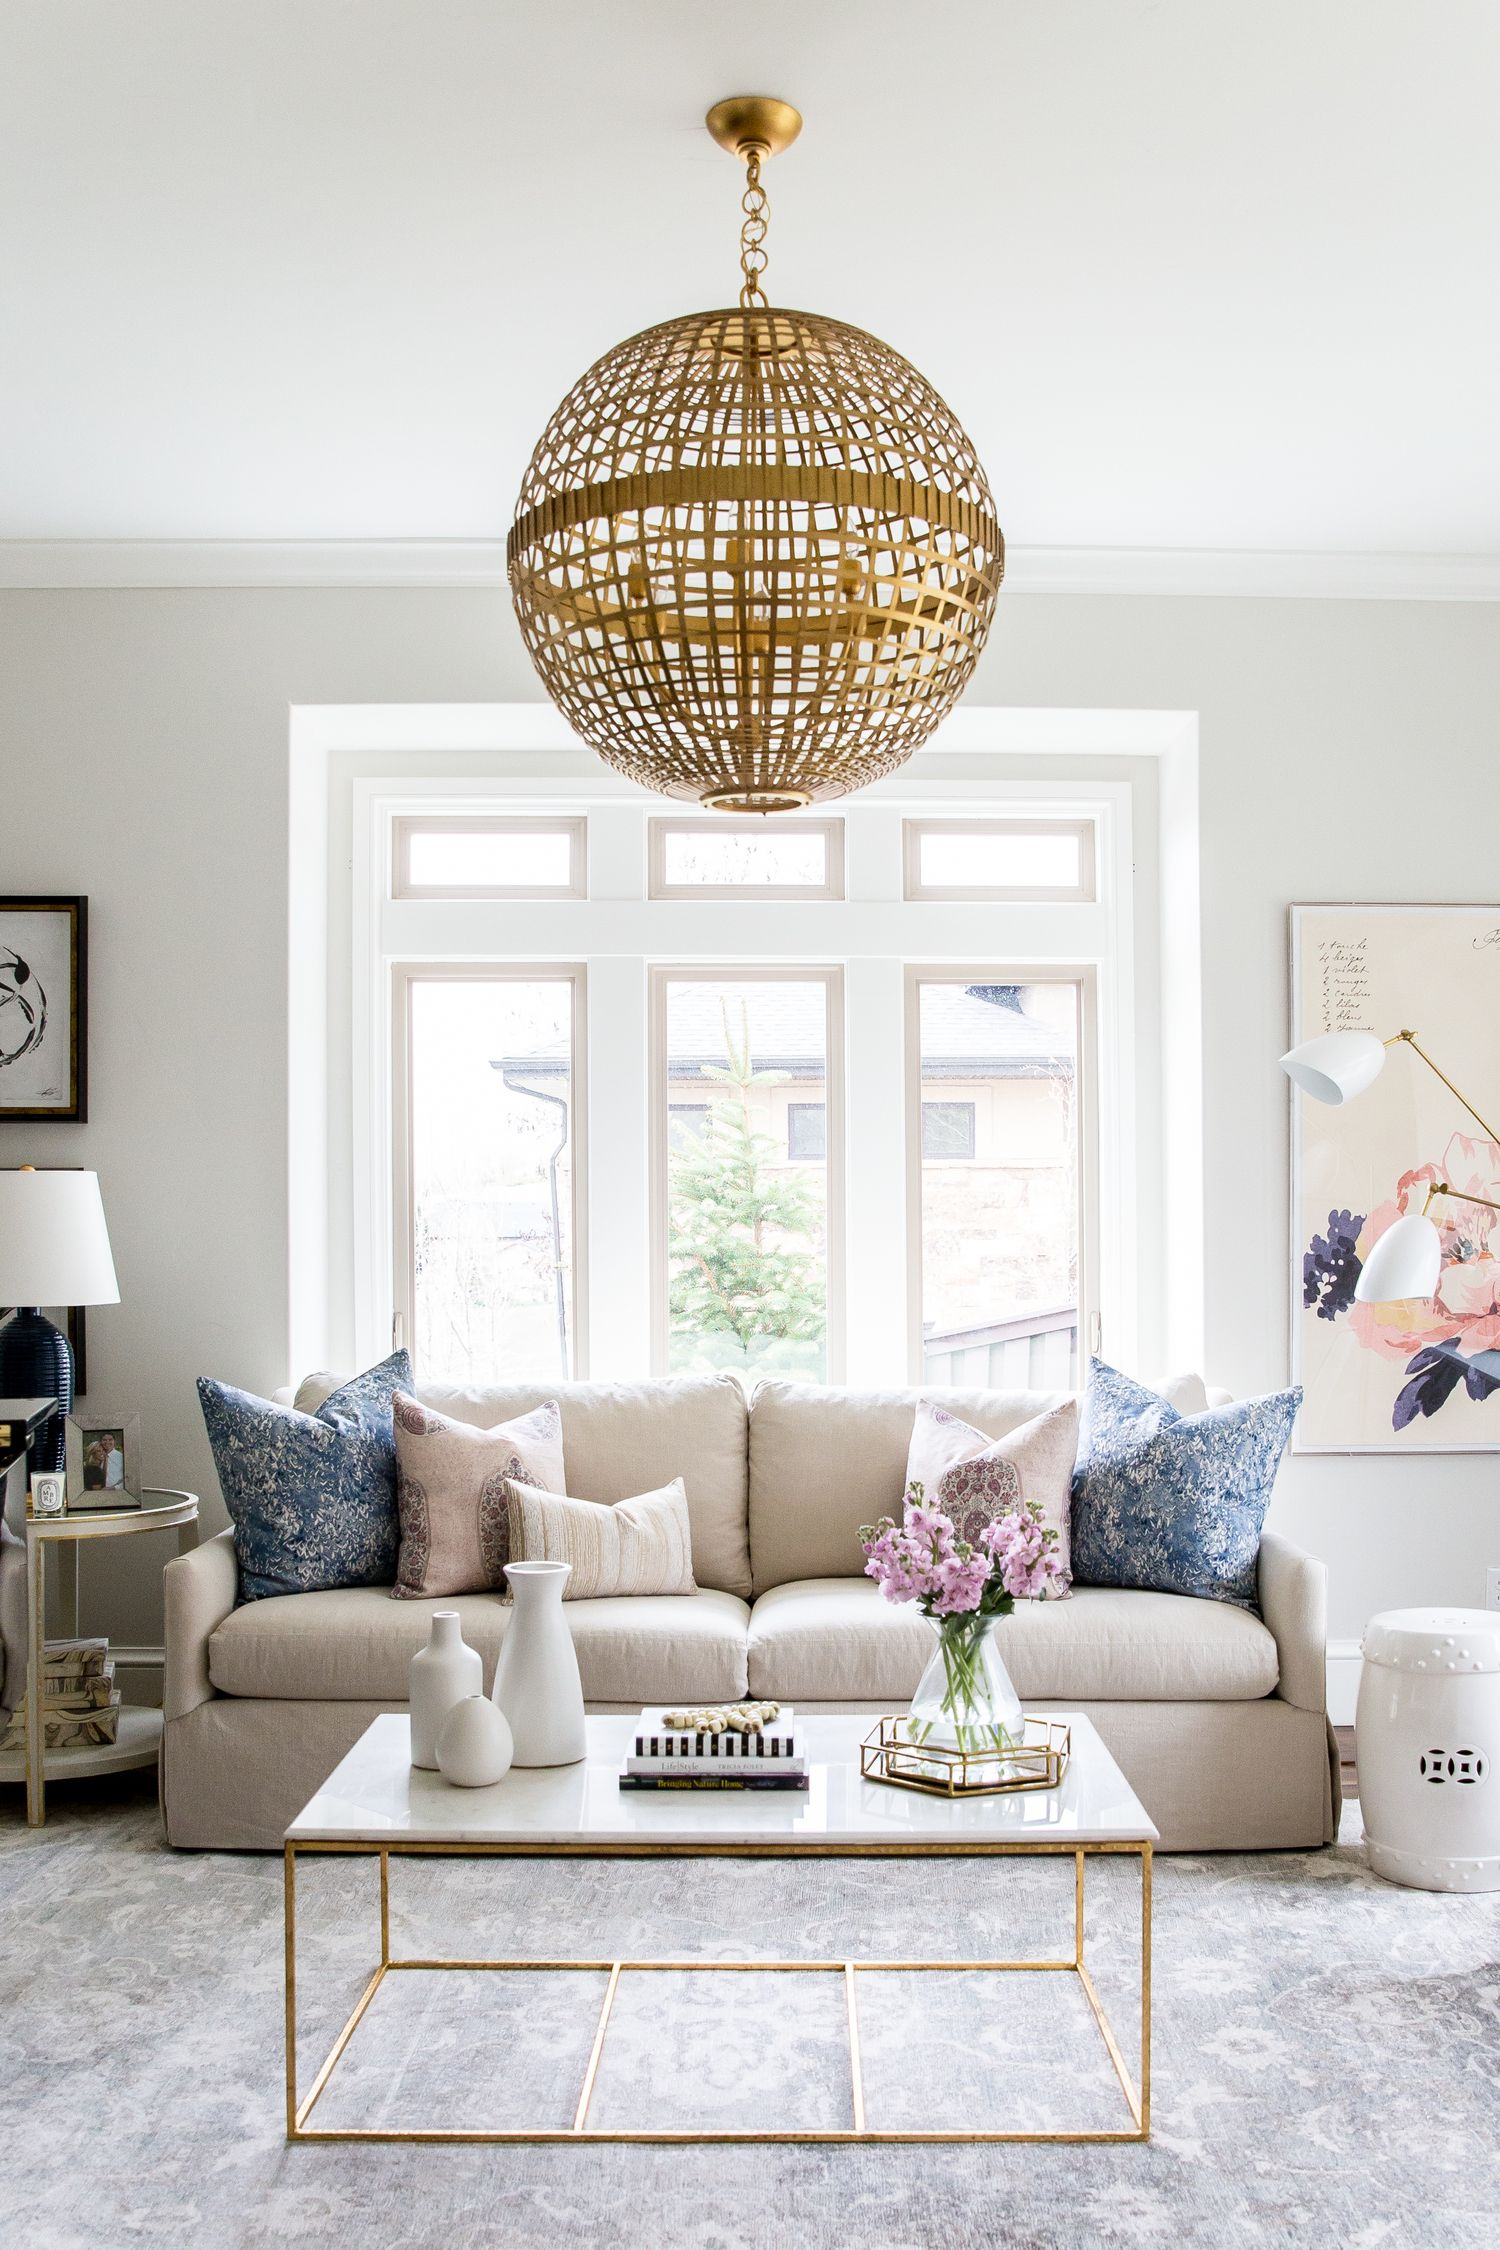 Best 25+ Gold Living Rooms Ideas On Pinterest | Gold Live, Asian Decorative  Pillows And Asian Pillows And Throws